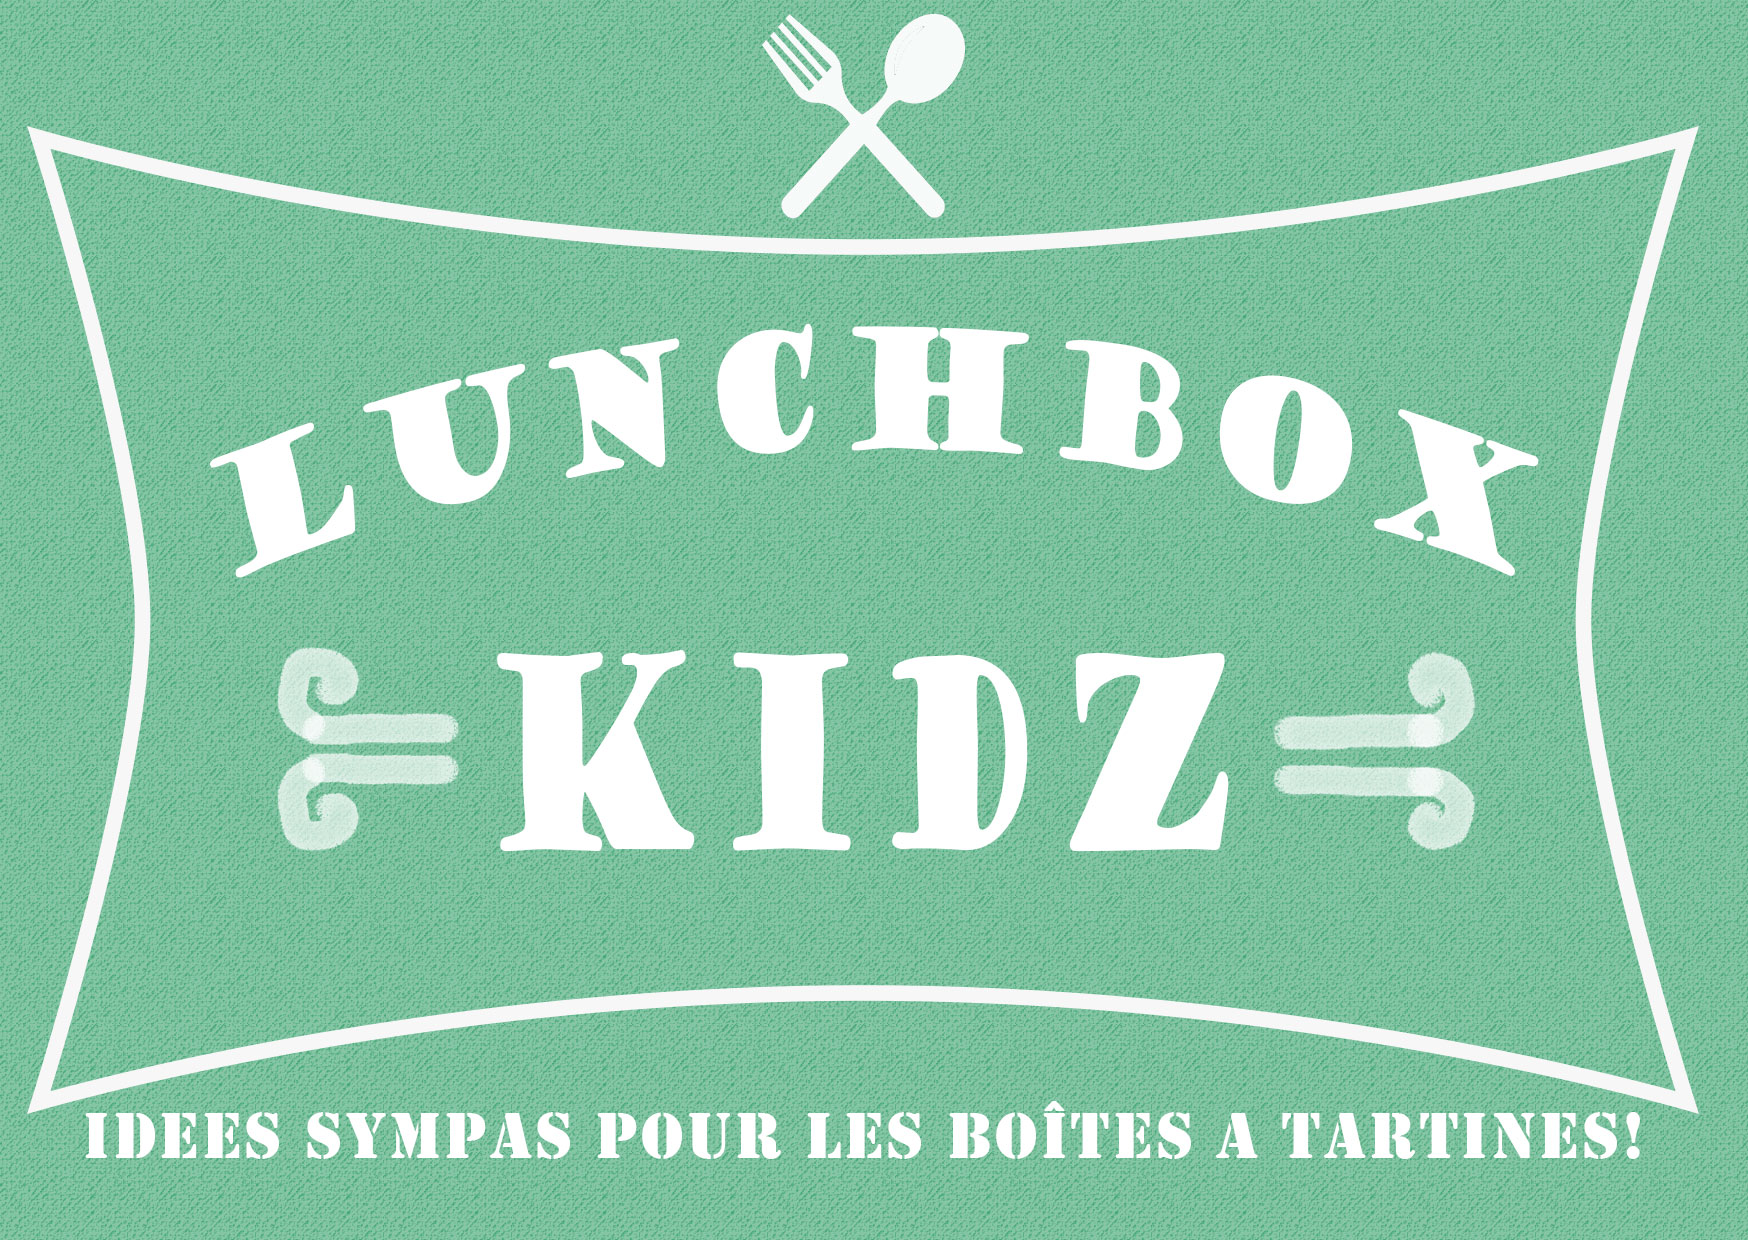 Lunch box Kidz